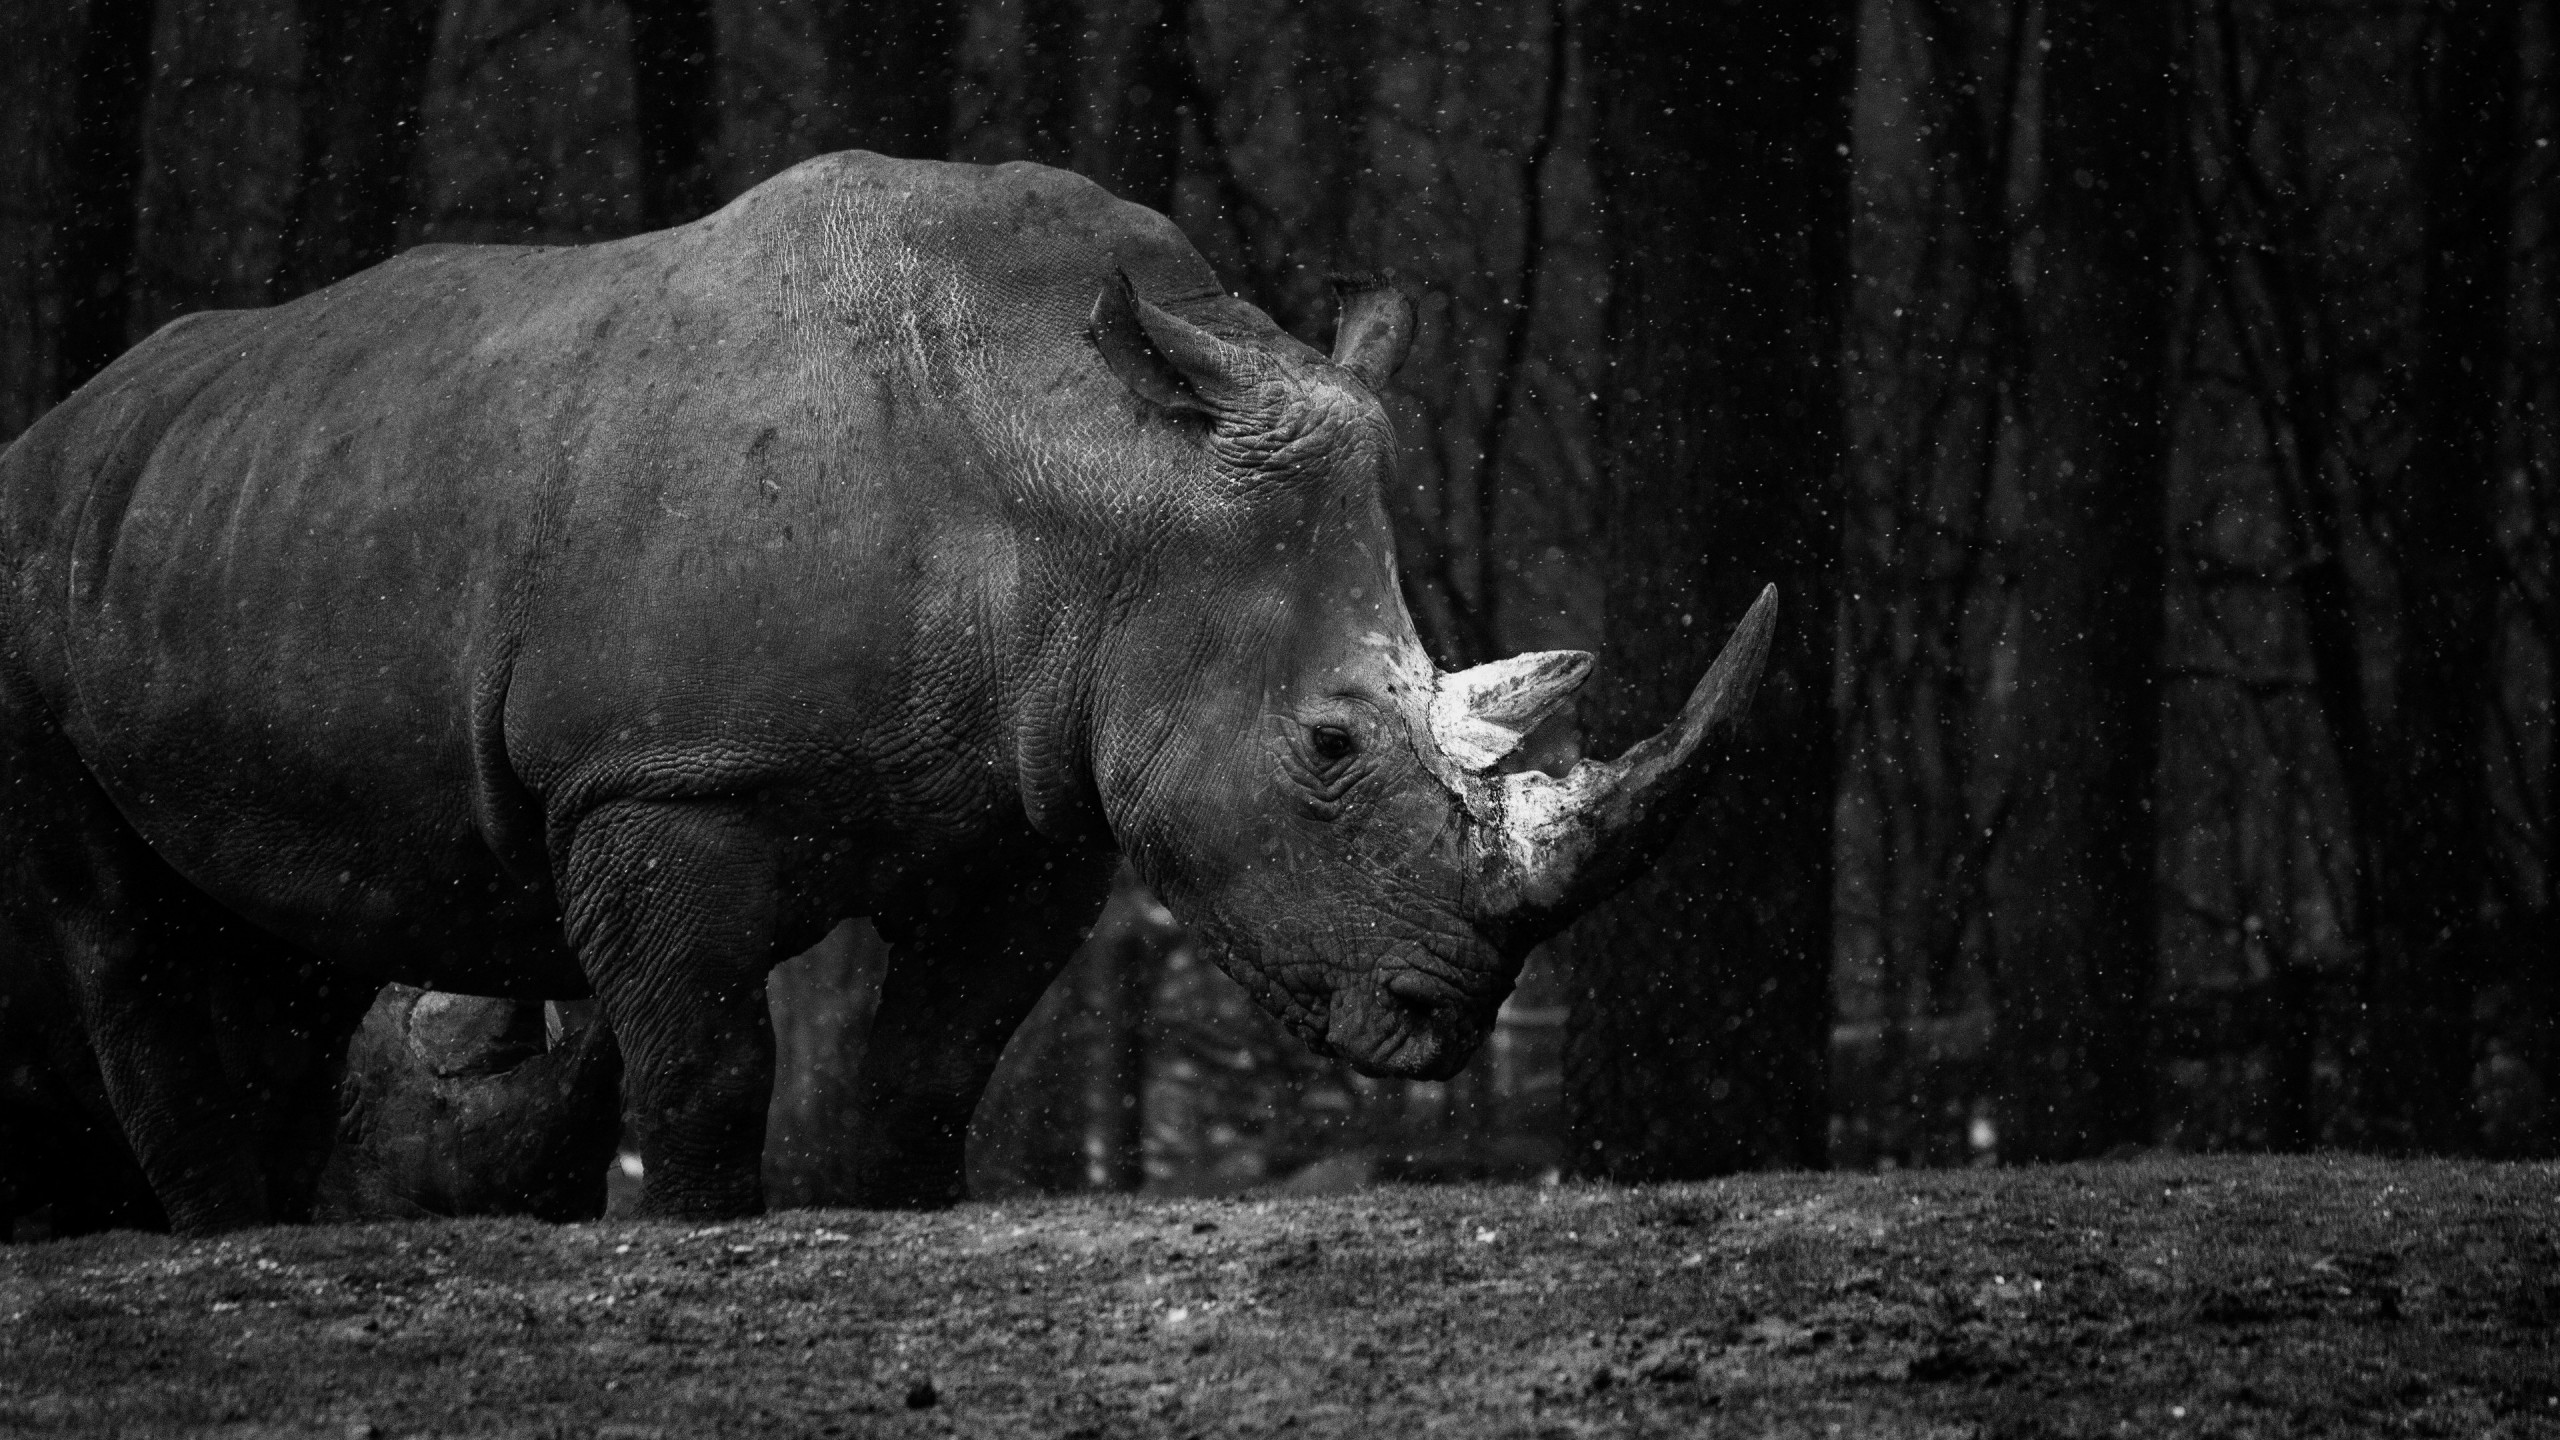 Rhino at zoo | 2560x1440 wallpaper